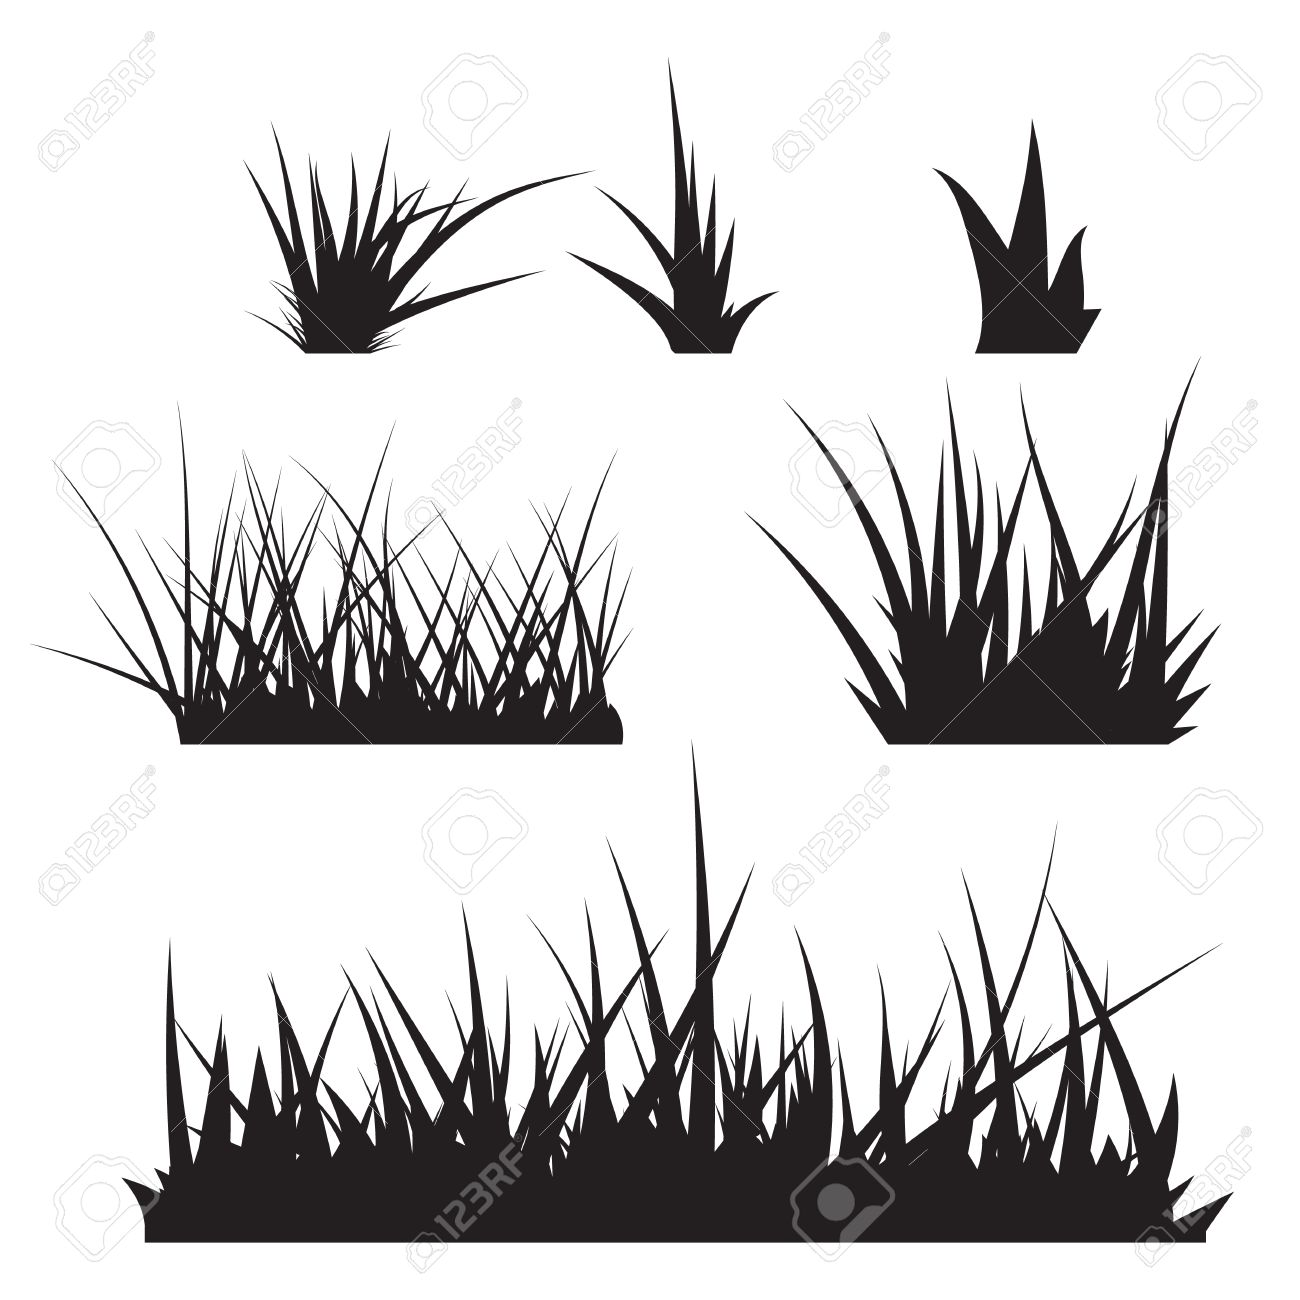 grass vector royalty free cliparts vectors and stock illustration image 42022010 grass vector